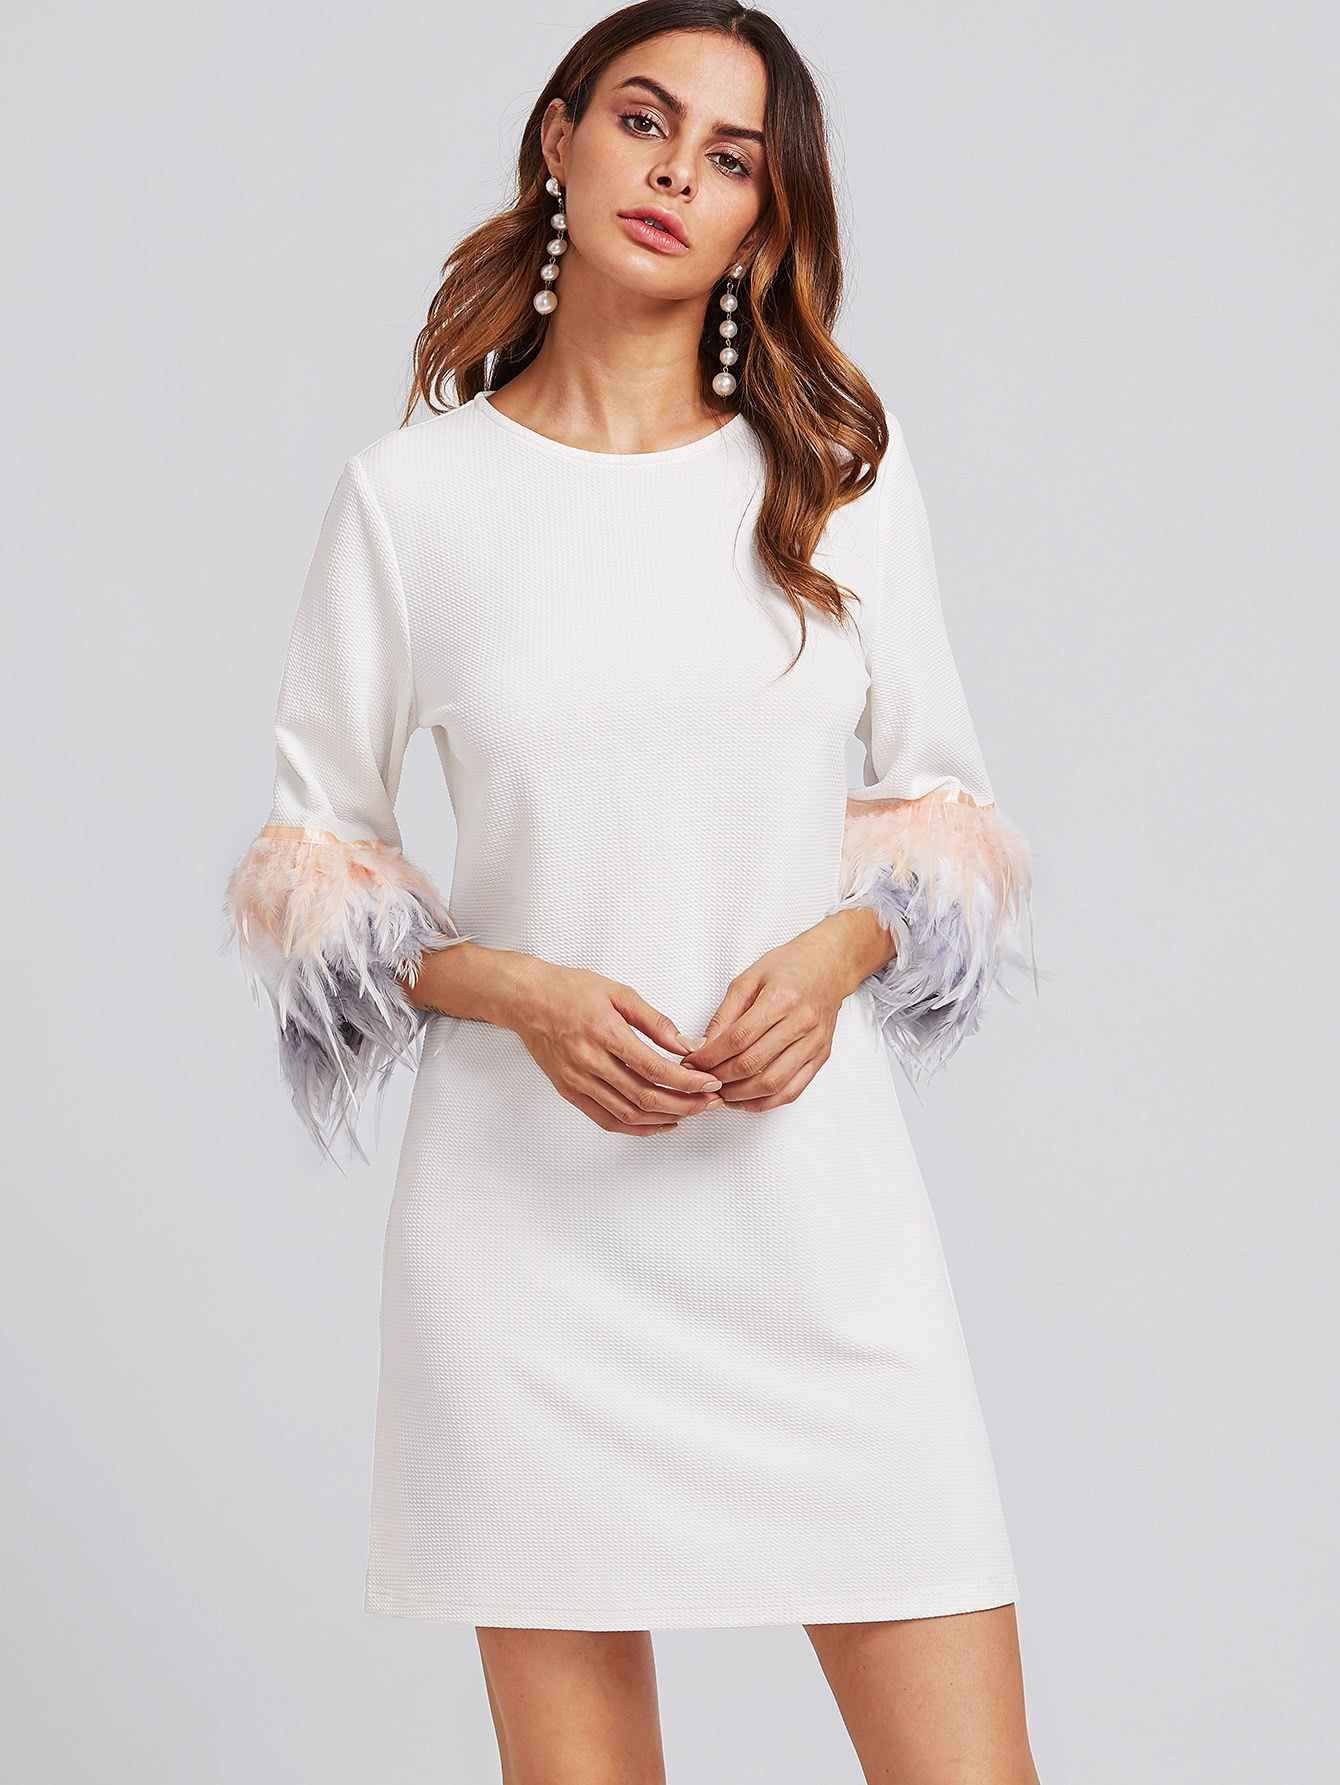 10064eacc0 Shop Contrast Feather Sleeve Textured Dress online. SheIn offers Contrast  Feather Sleeve Textured Dress & more to fit your fashionable needs.